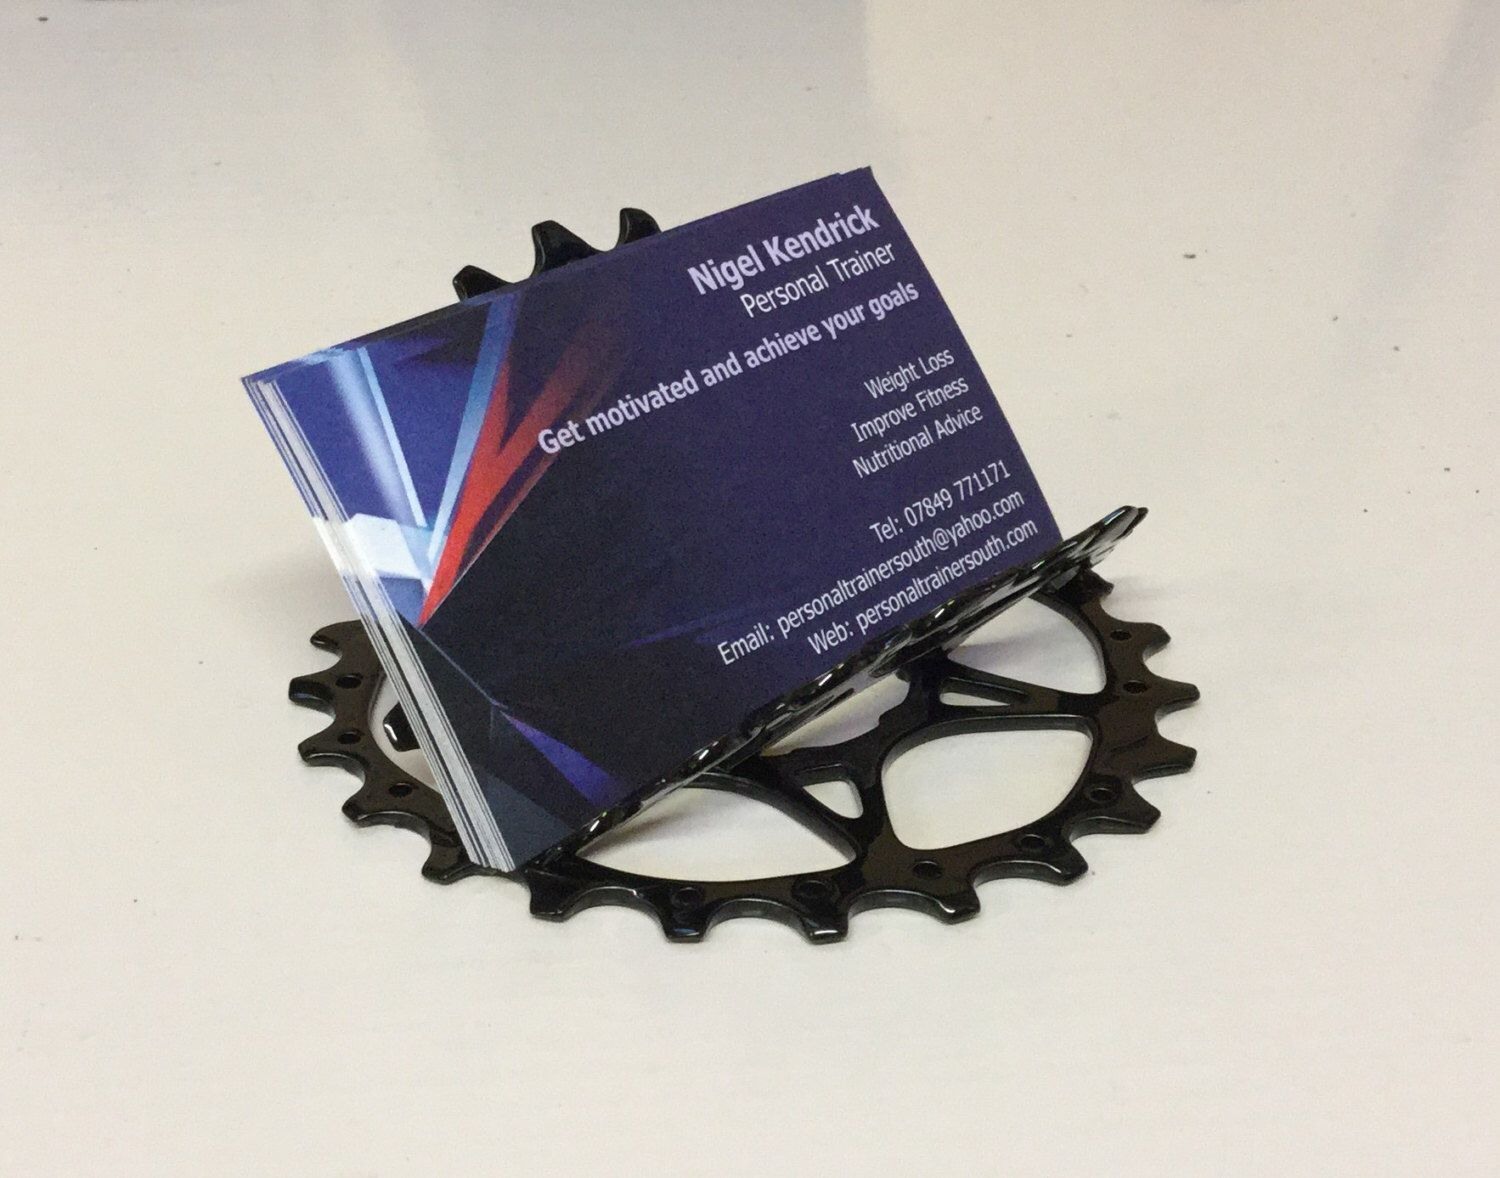 Business card holder upcycled bike chainring bicycle shop cafe business card holder upcycled bike chainring bicycle shop cafe office by customradical on etsy magicingreecefo Gallery